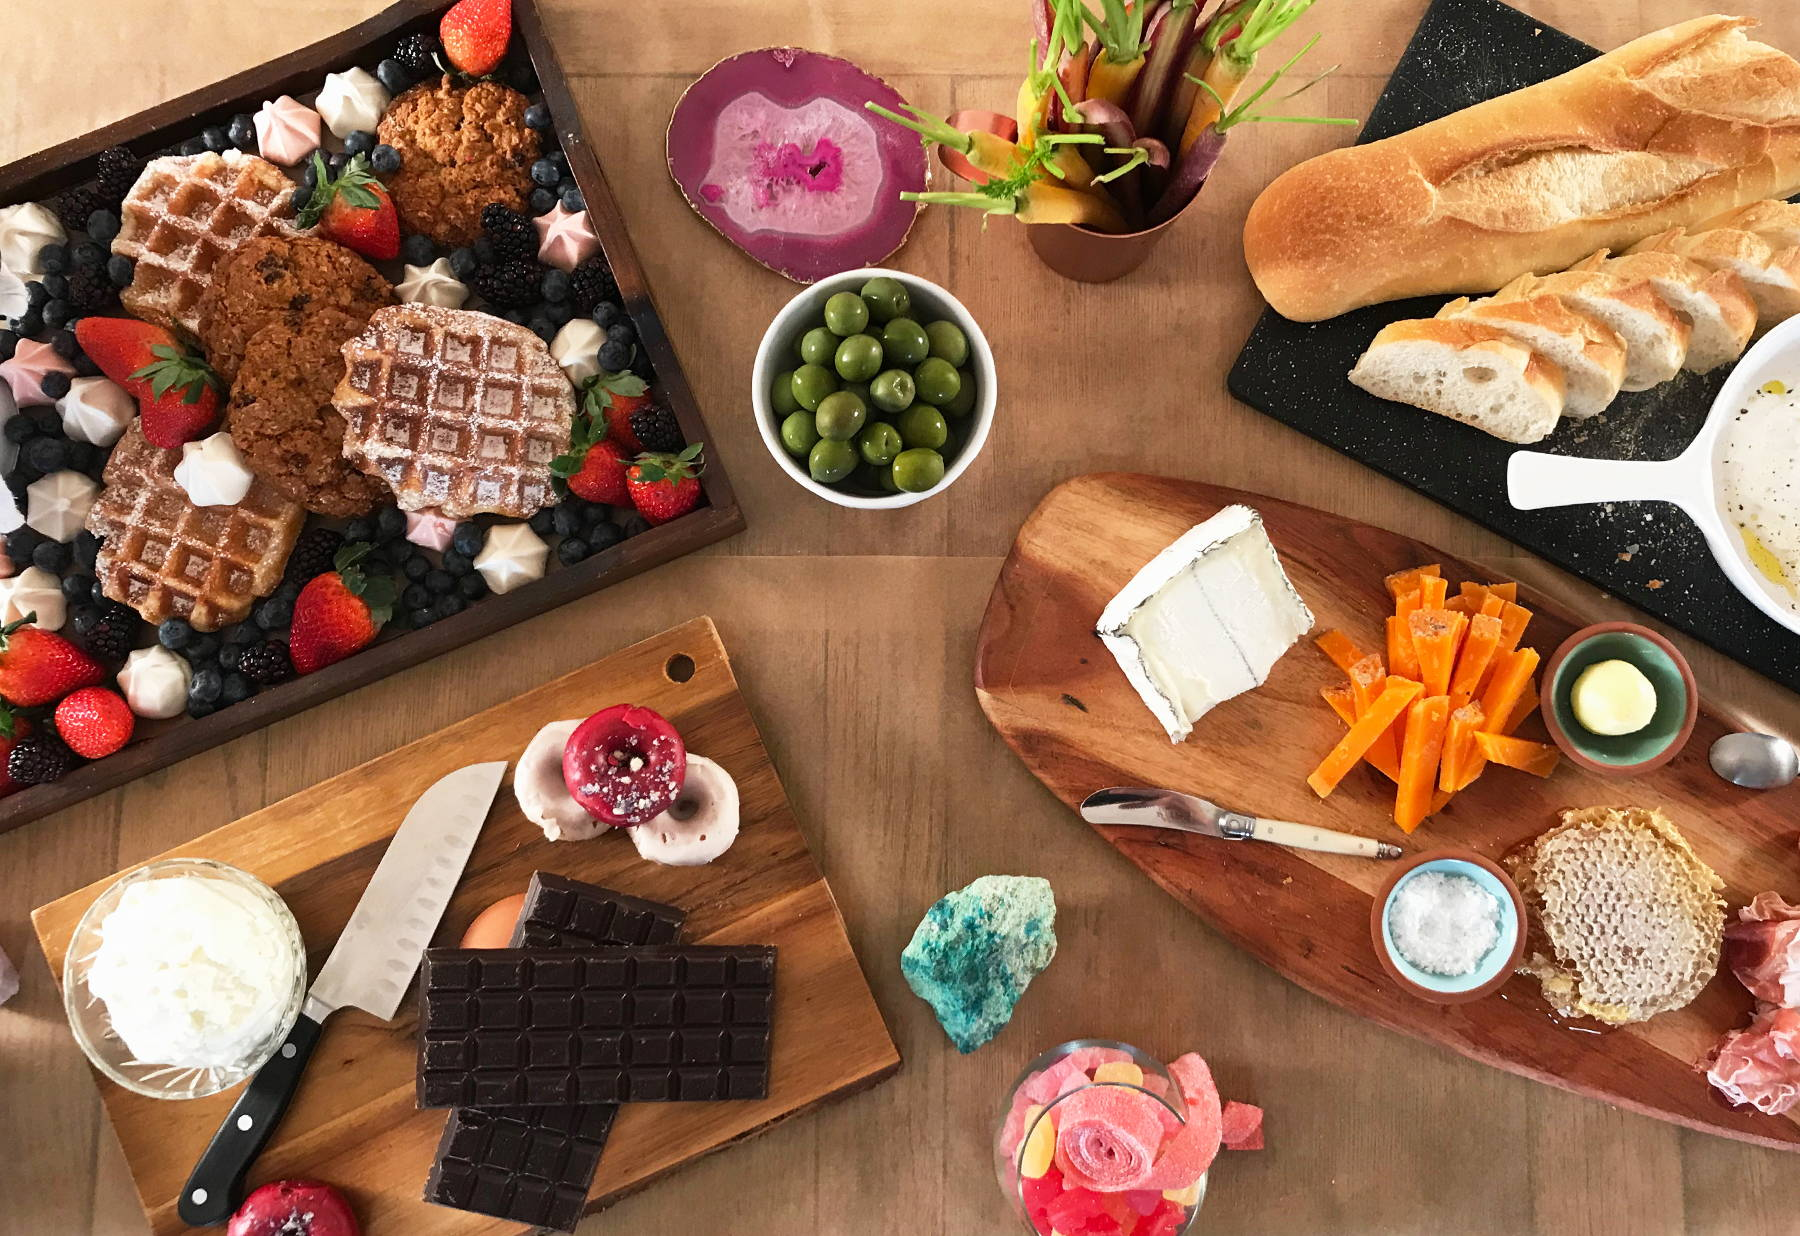 Unicorn Snot's Galentine's Day snack spread has cheeses, meats, waffles, olives, cookies, donuts, and chocolate.